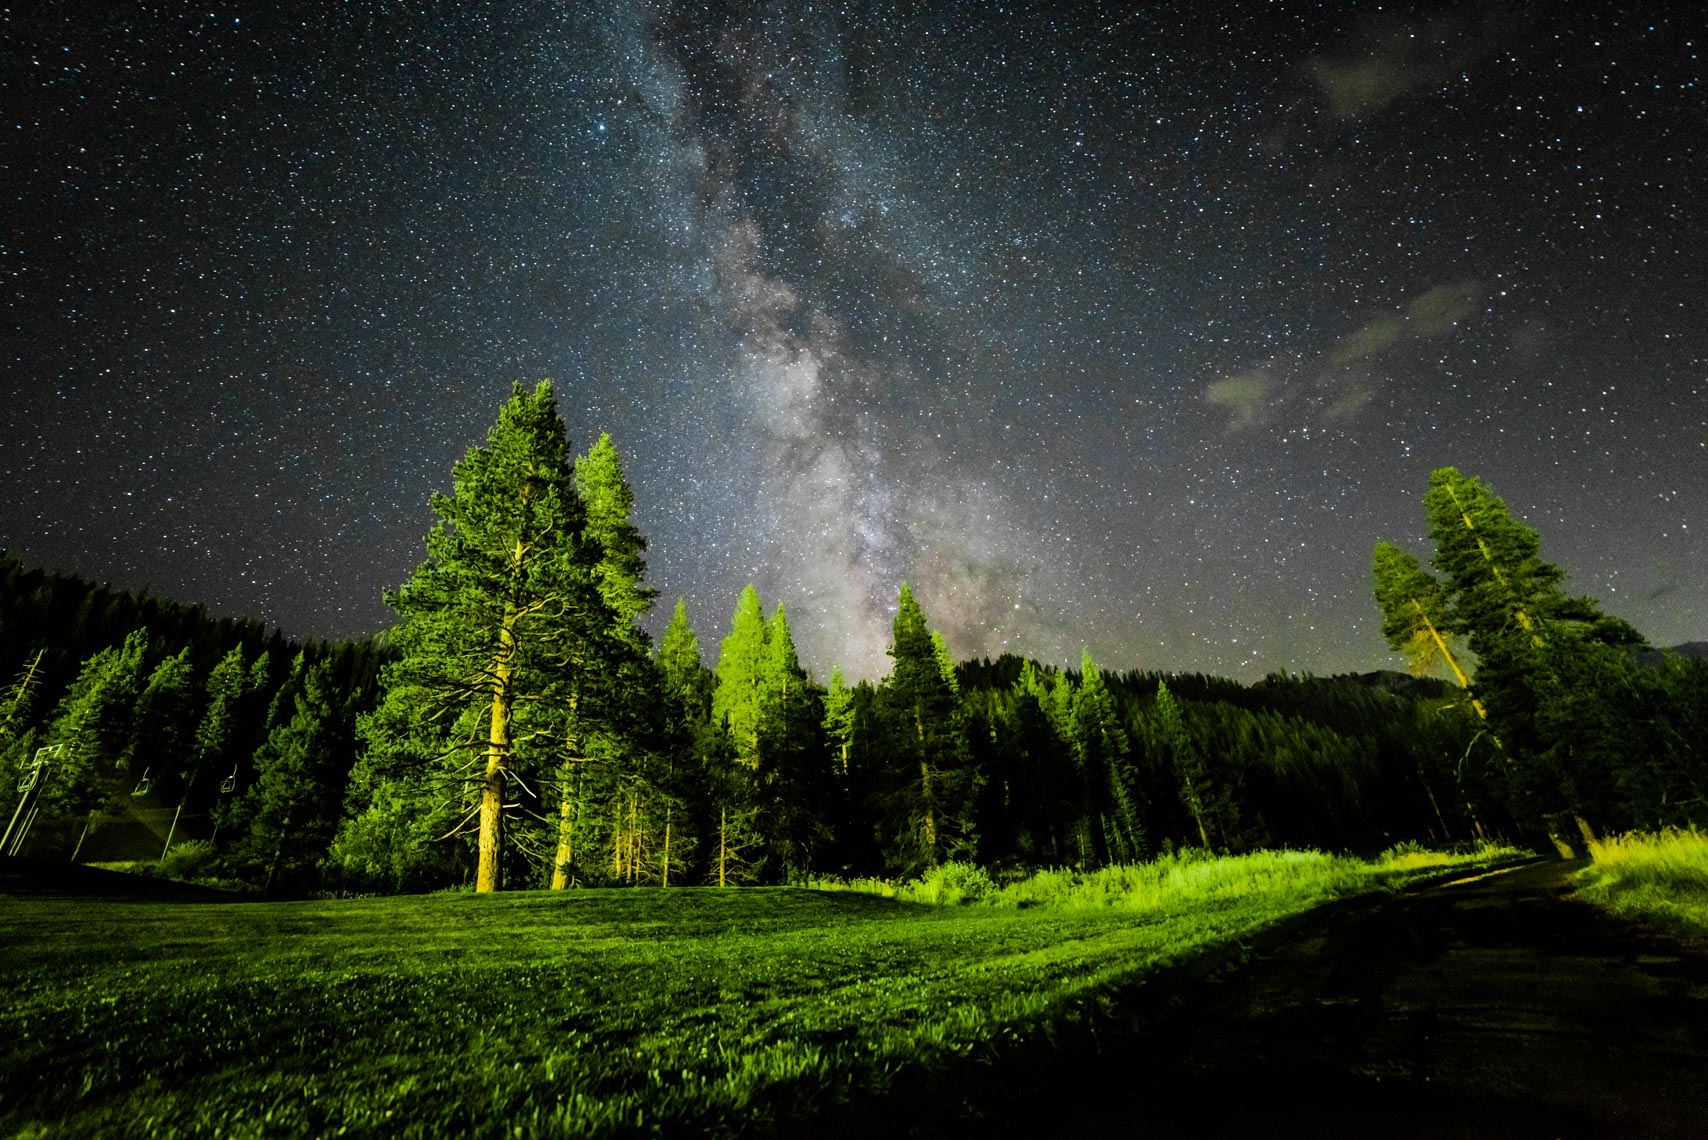 Landscape Photography, Squaw Valley, California, Nightscape, Milky Way Galaxy